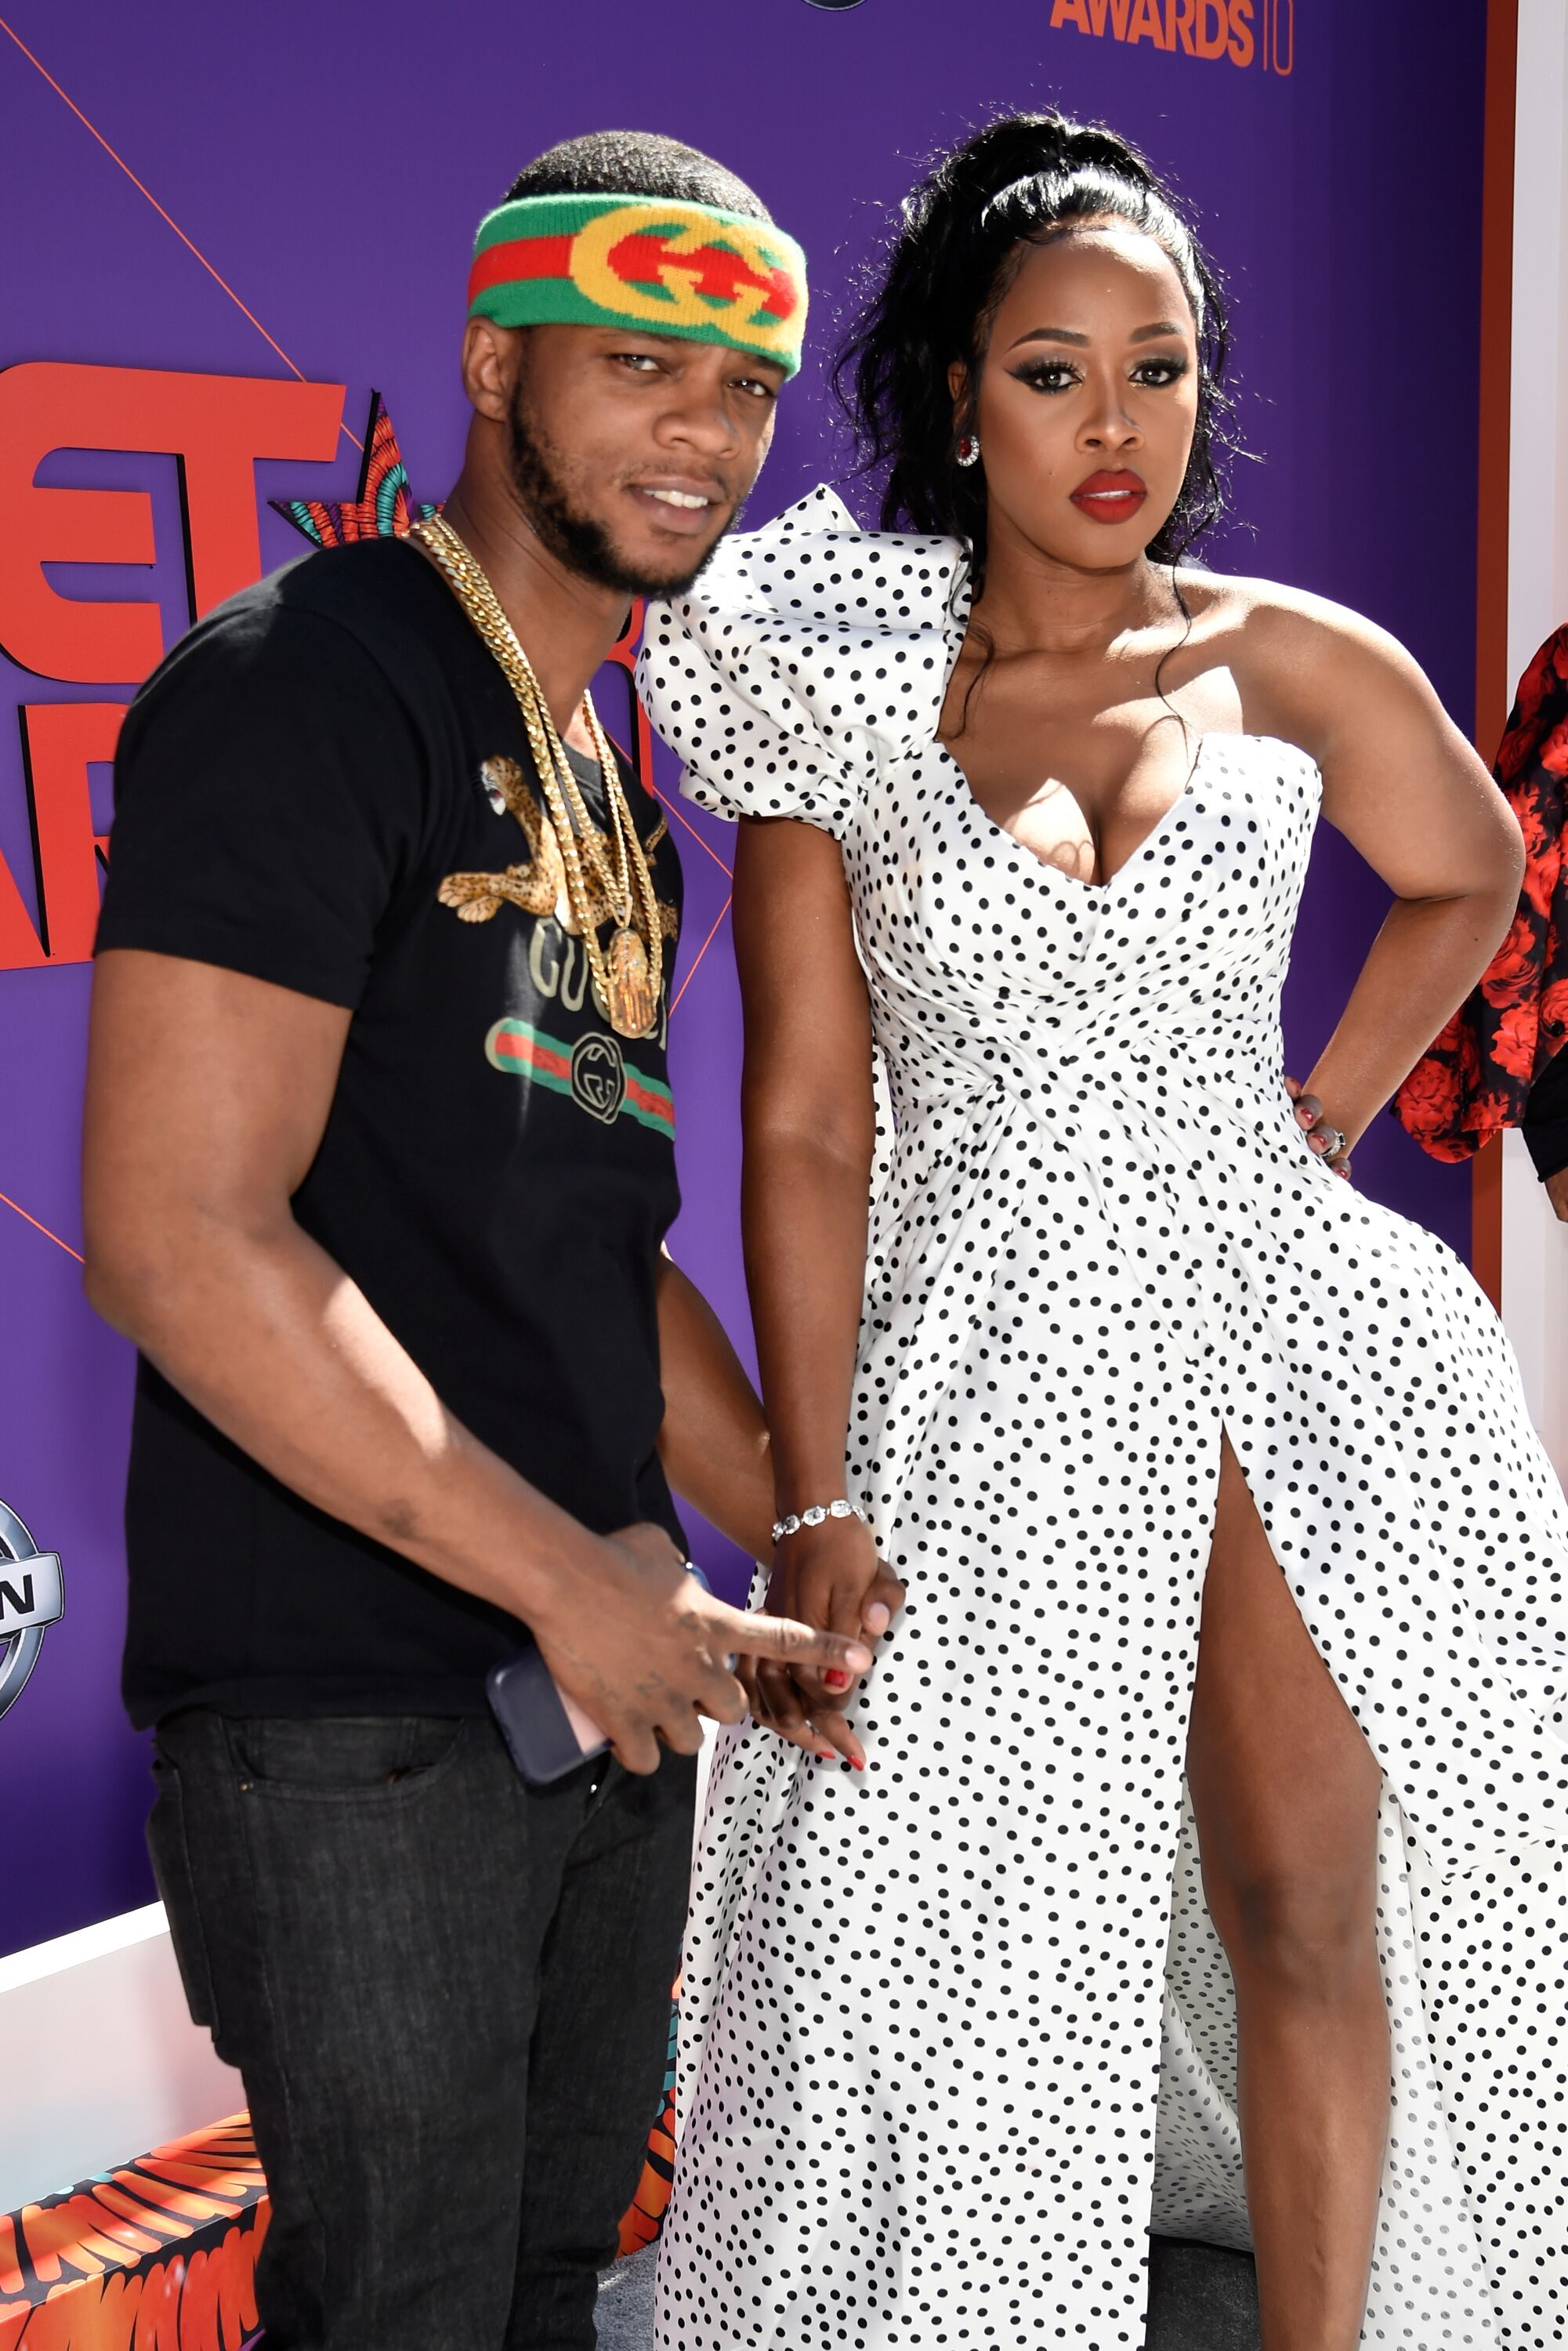 Papoose (L) and Remy Ma attends the 2018 BET Awards at Microsoft Theater on June 24, 2018 in Los Angeles, California   Photo: Getty Images